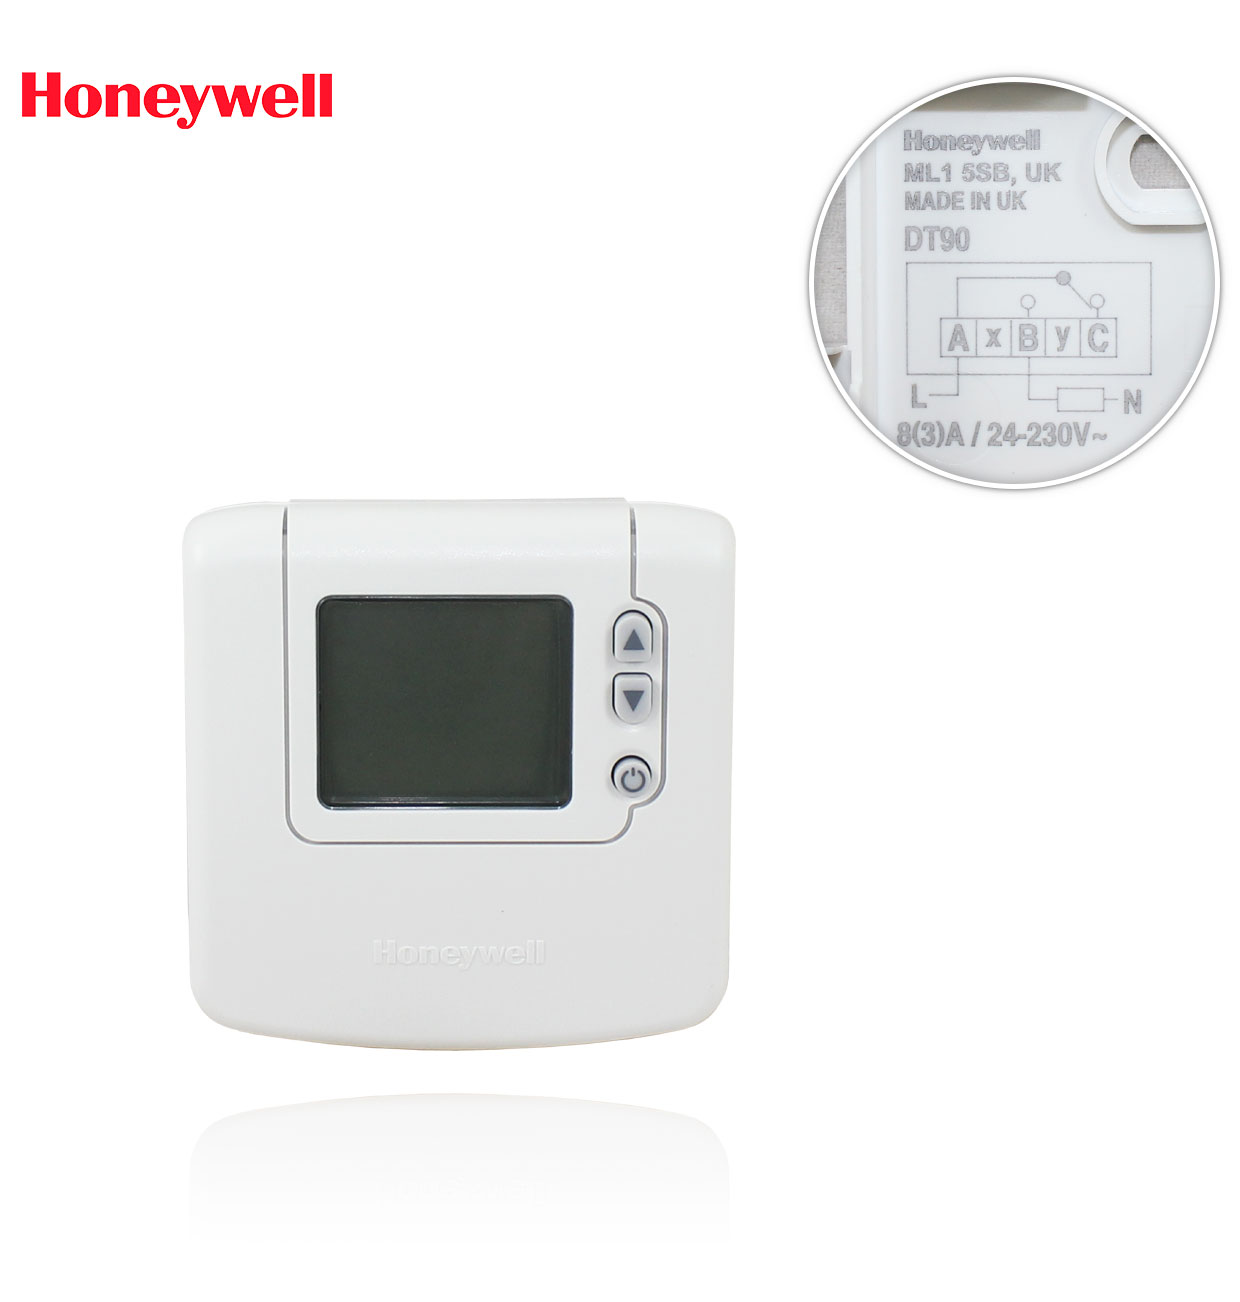 DT90 TERMOSTATO DE AMBIENTE DIGITAL HONEYWELL